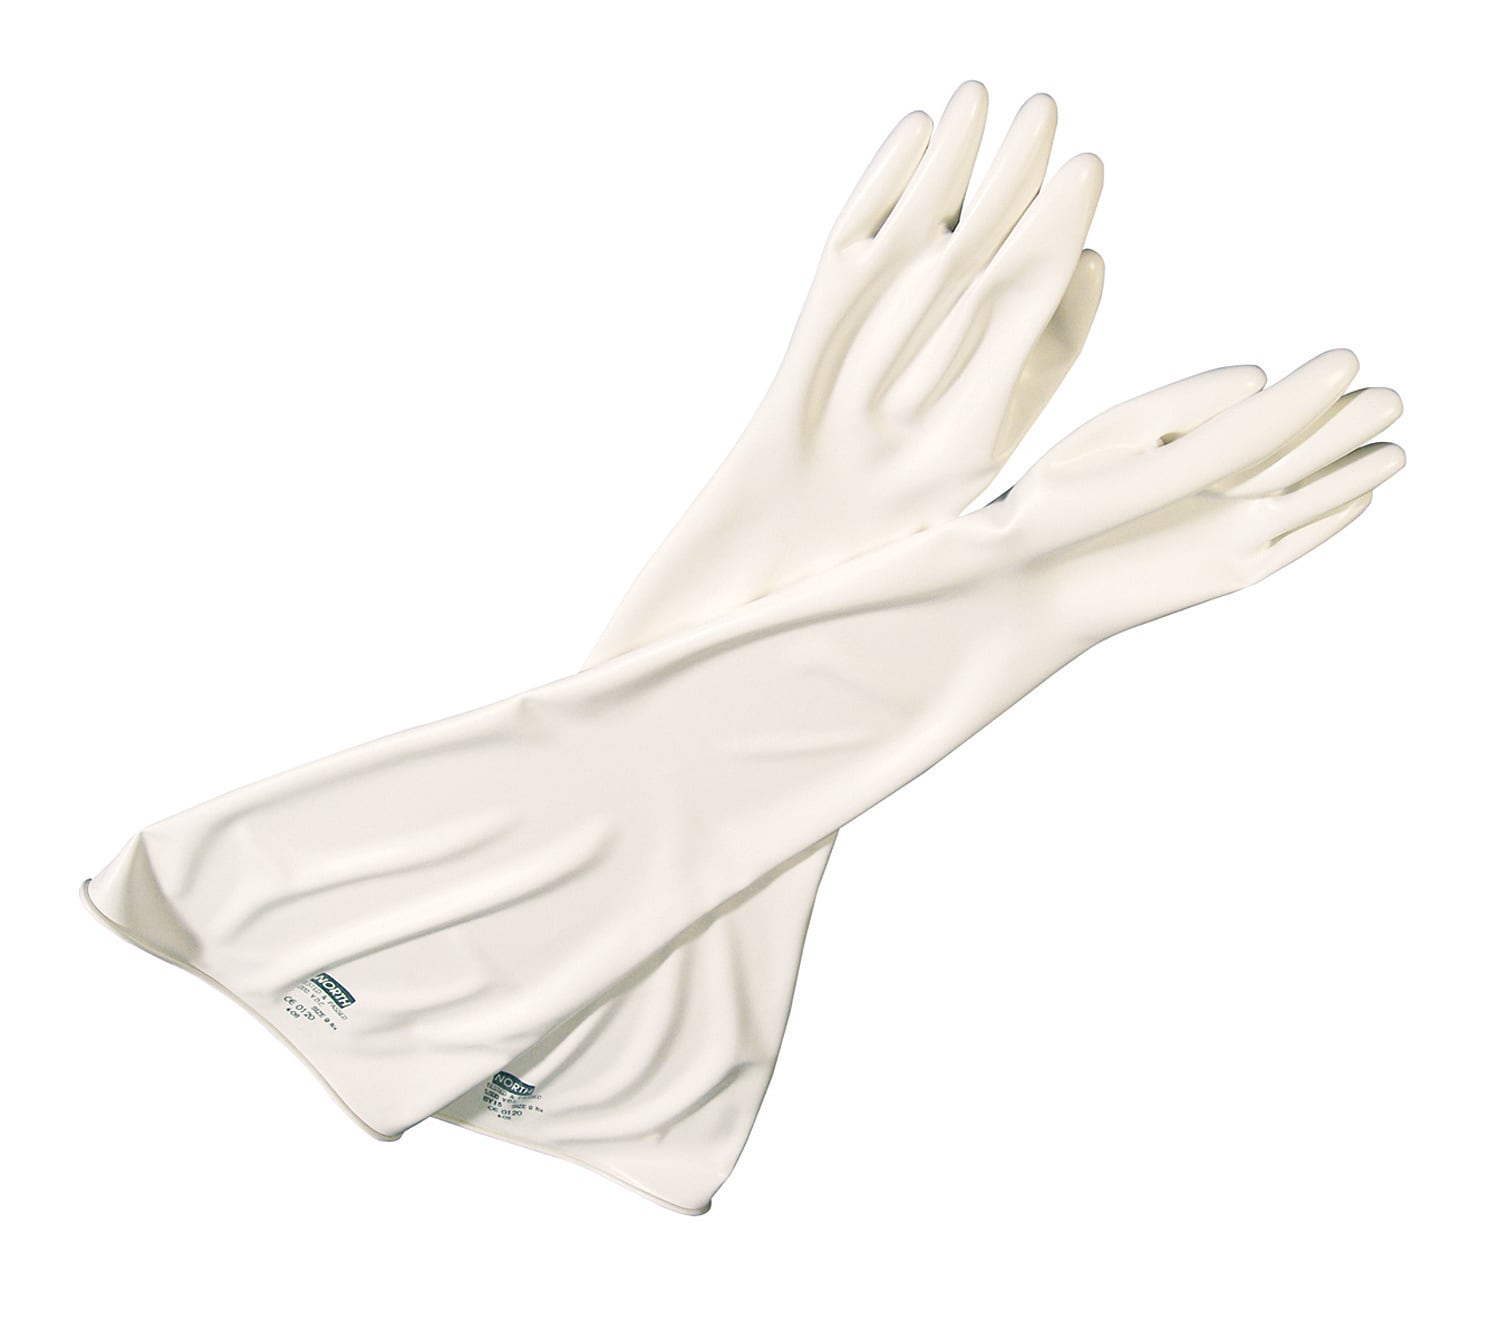 CSM Glovebox Gloves - 8Y3032_1